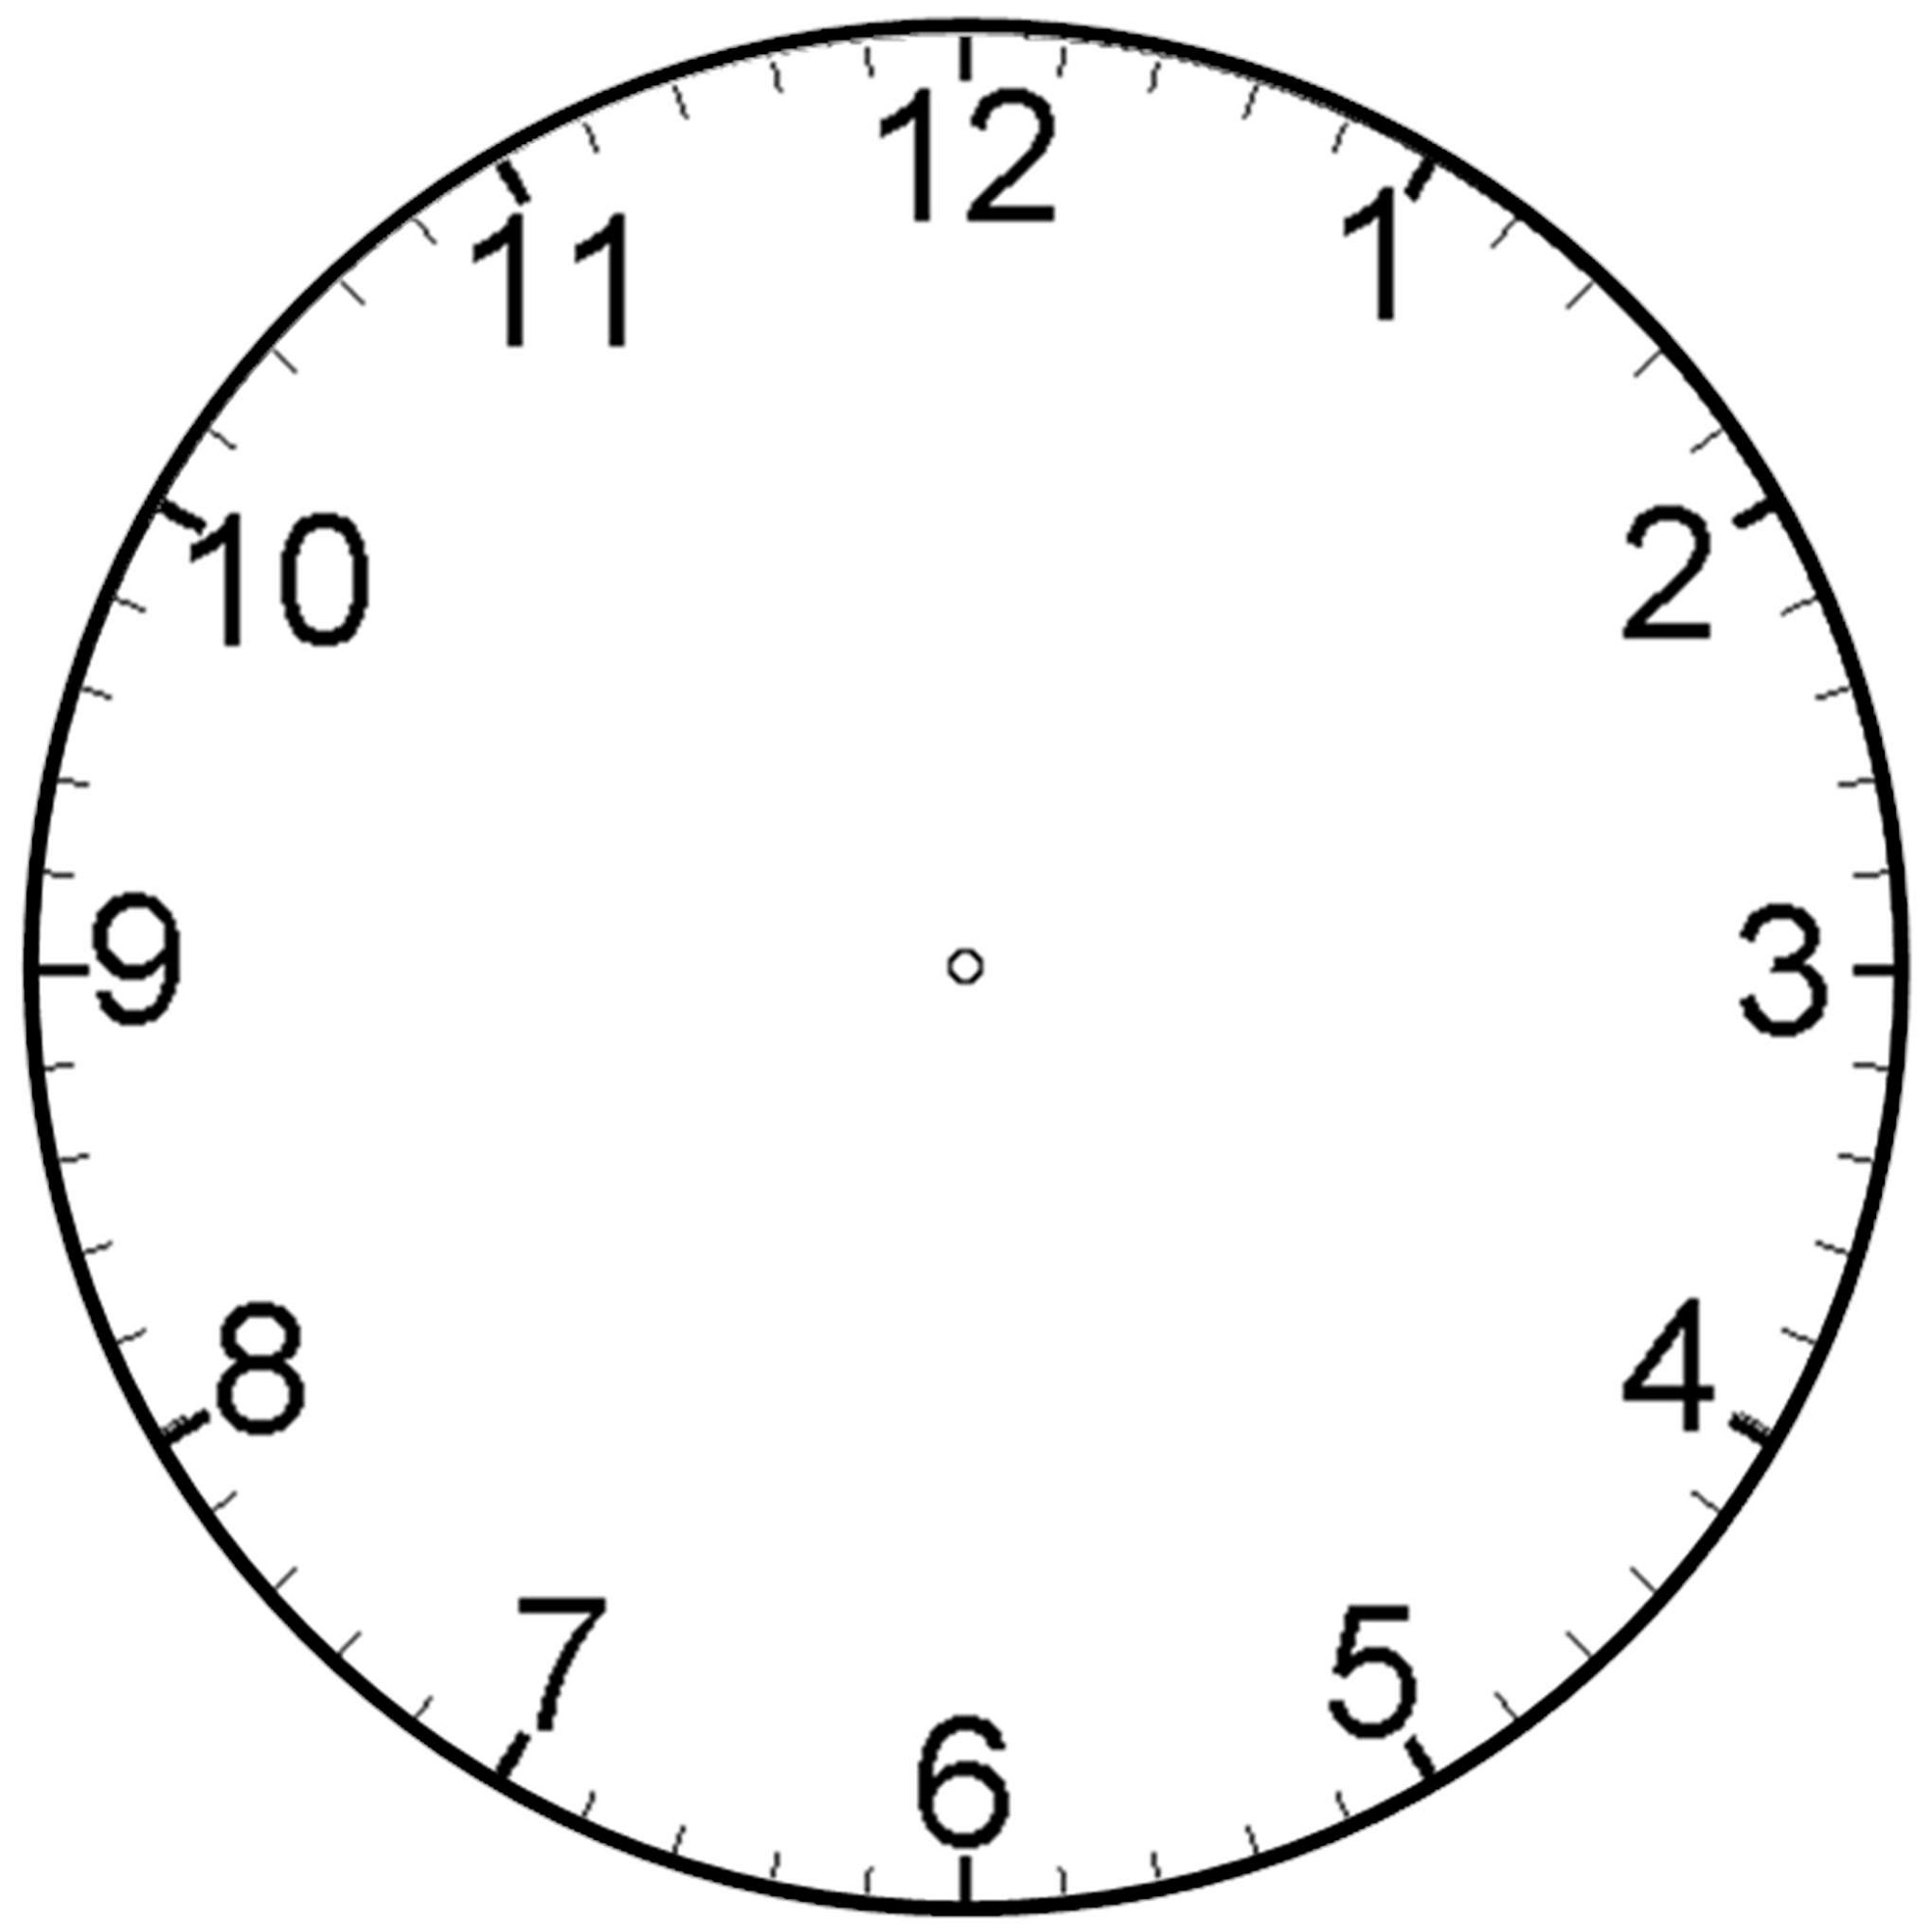 blank-clock-face-template-printable